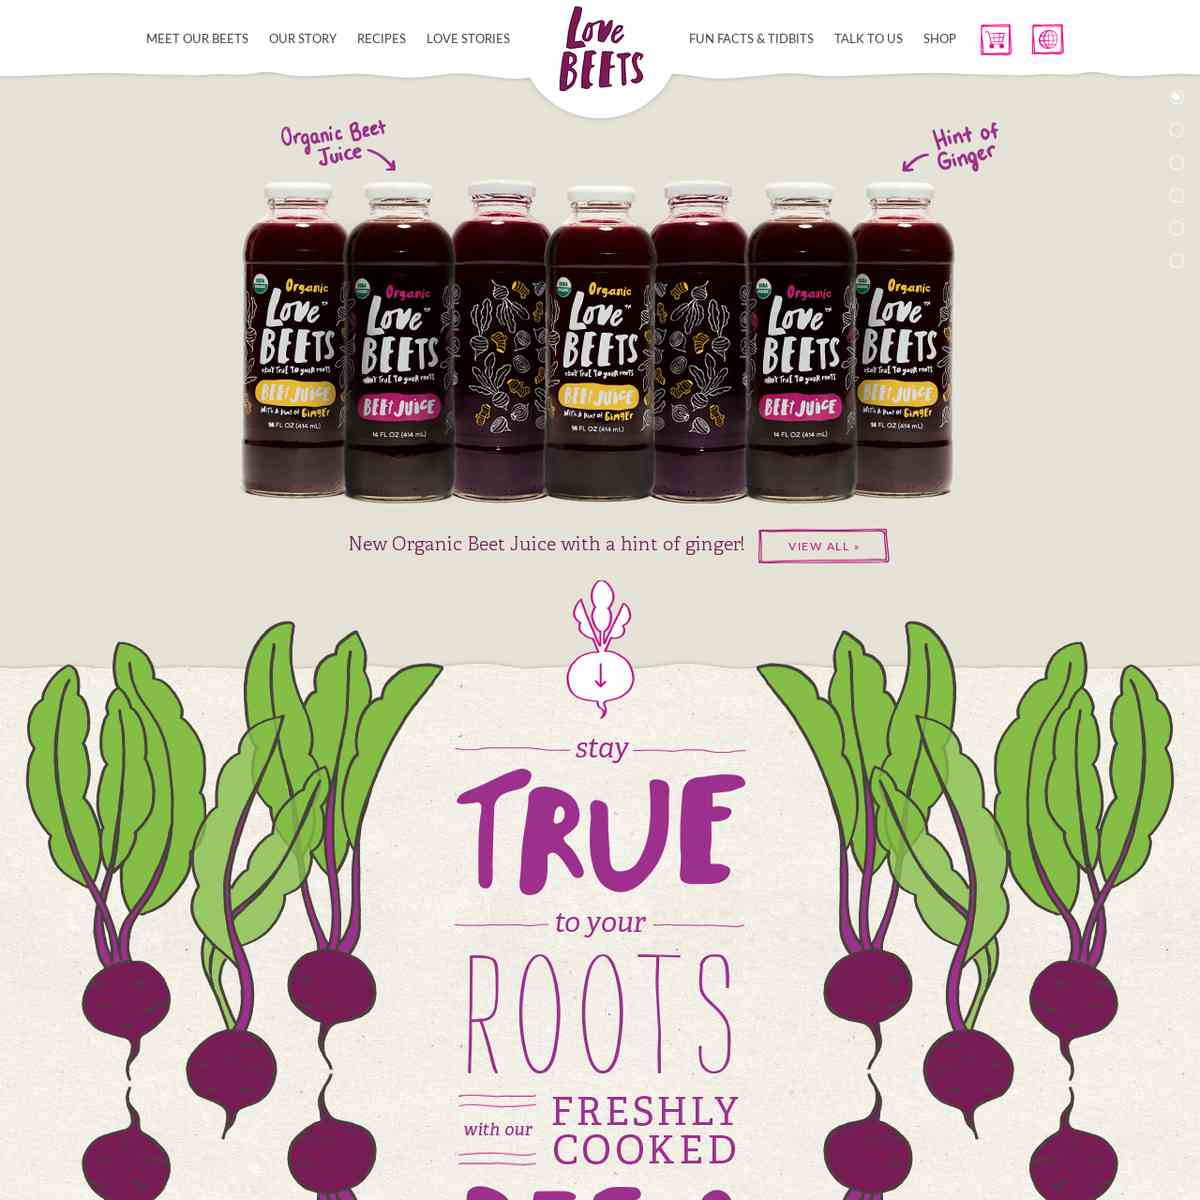 Inspiration - Love Beets